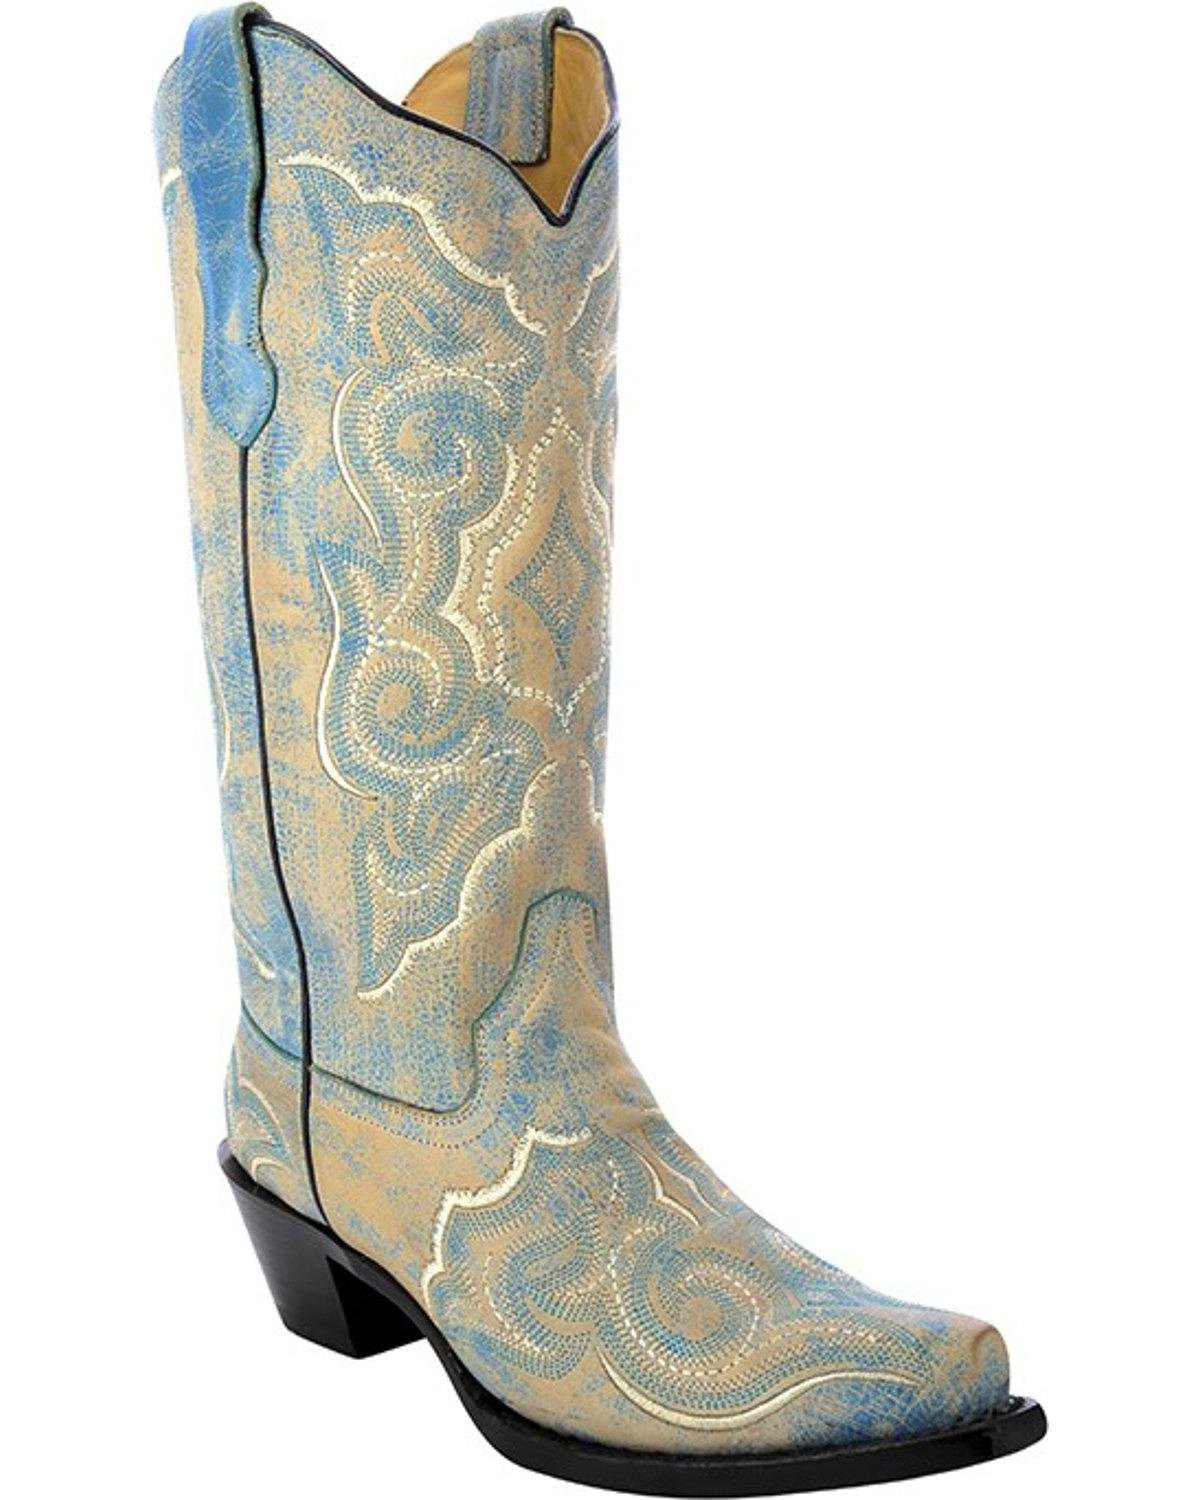 Corral Women's Distressed Leather Embroidered Cowgirl Boot Snip Toe Turquoise 11 M